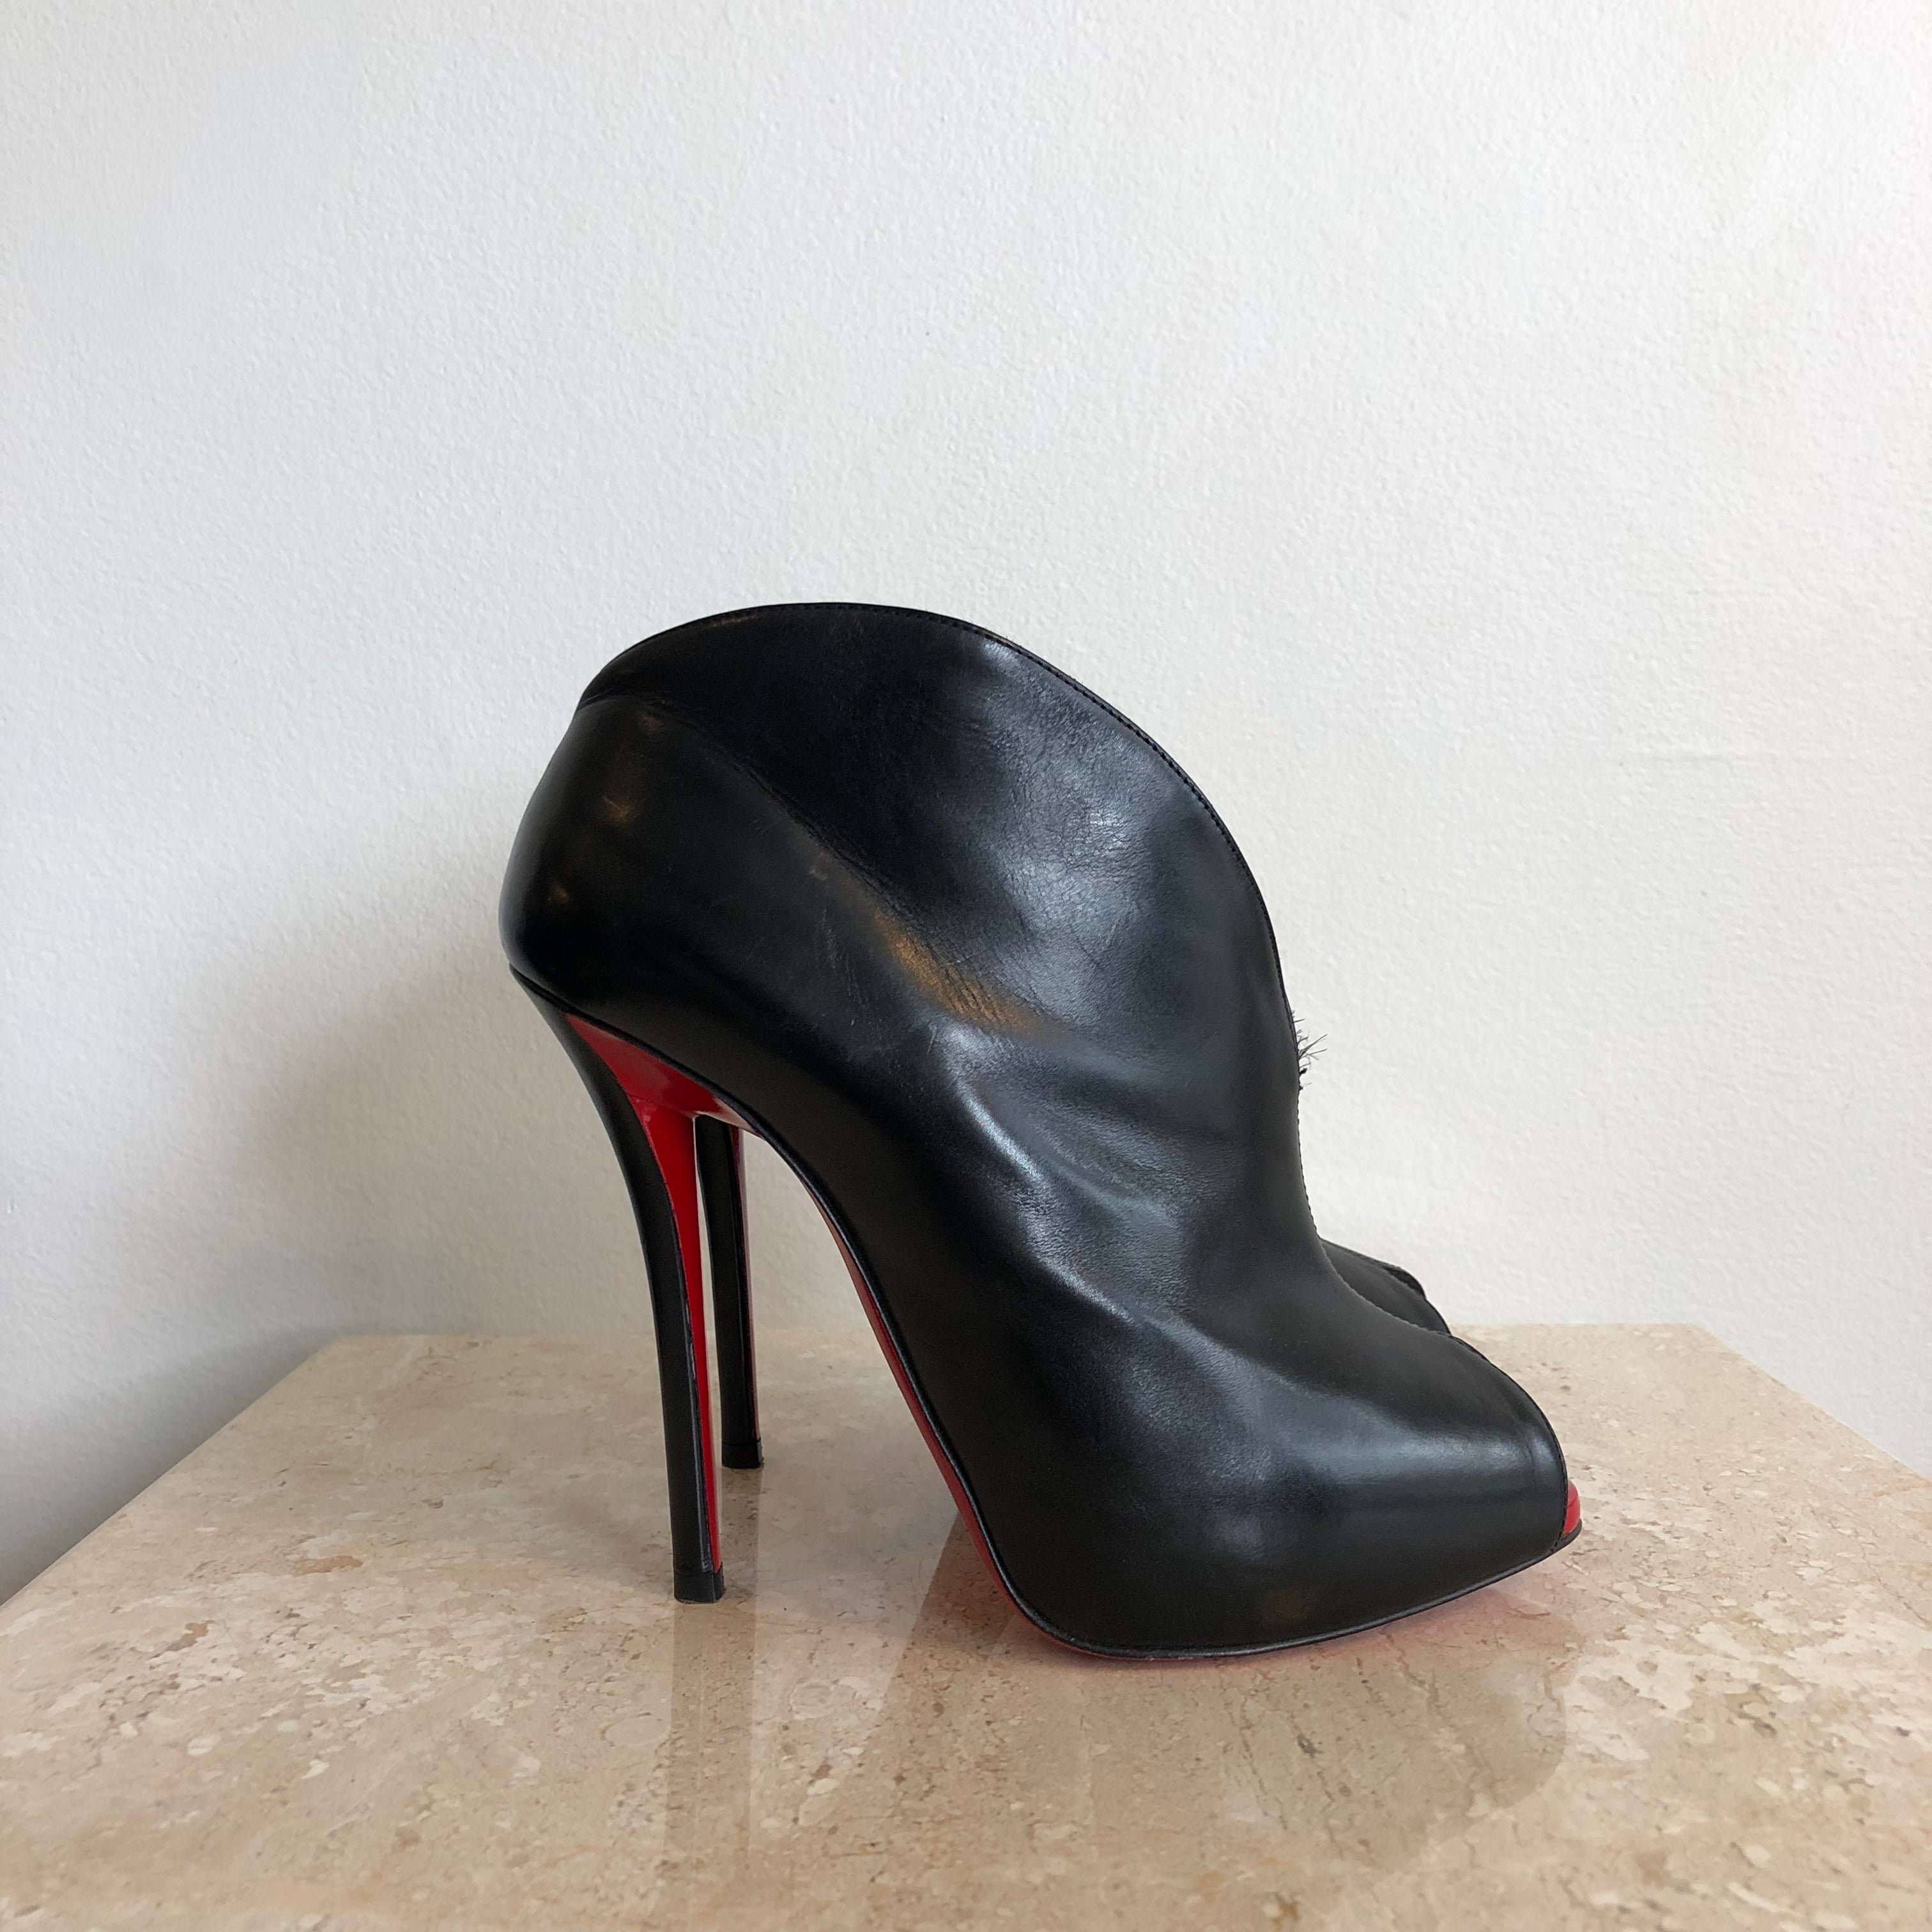 Authentic CHRISTIAN LOUBOUTIN Booties 37.5